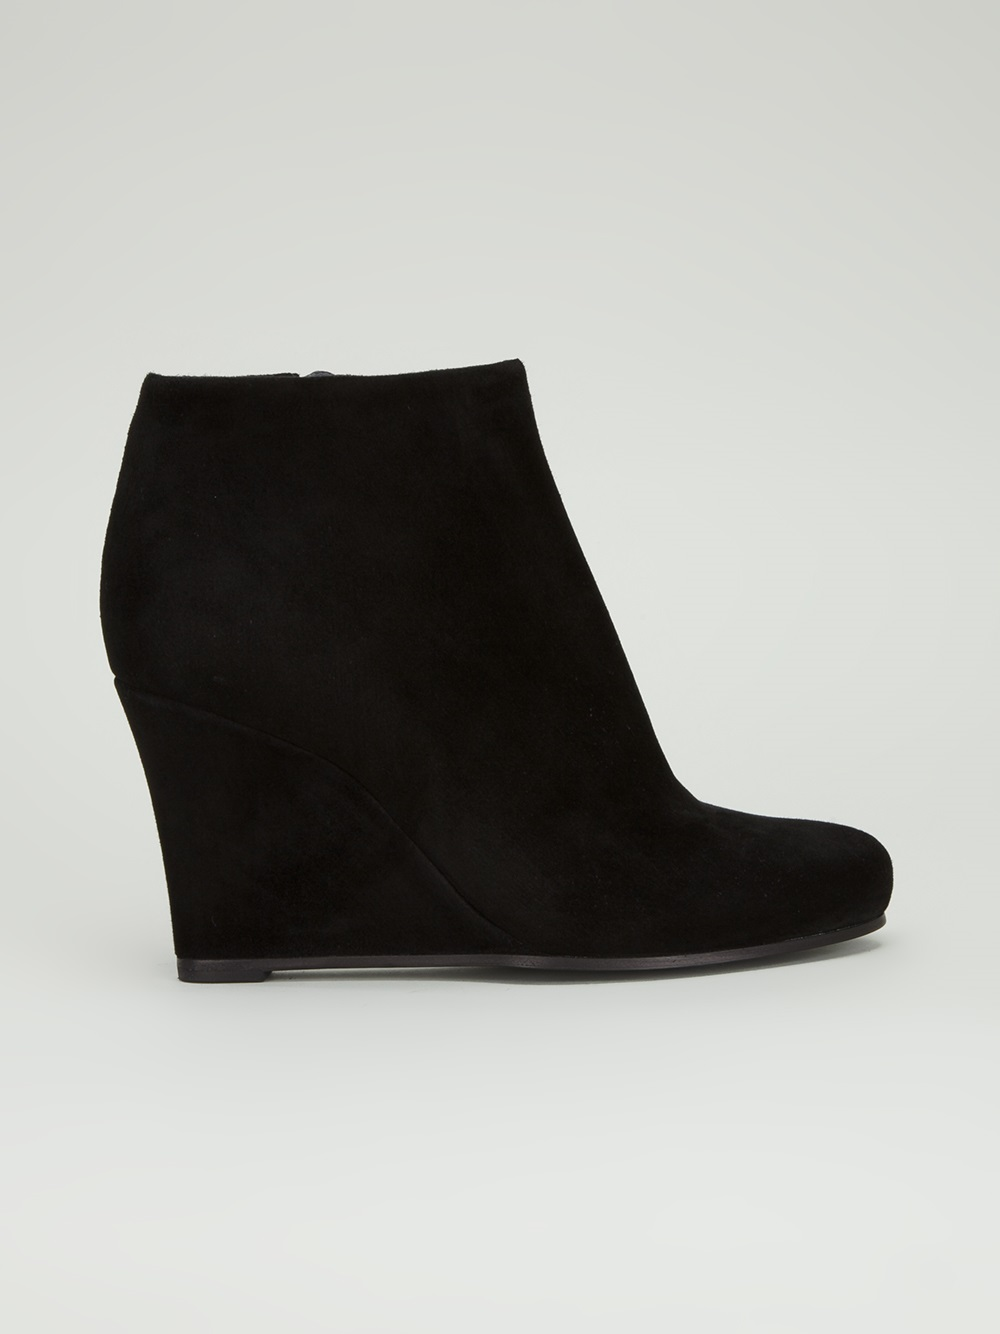 black suede ankle boots wedge | Gommap Blog